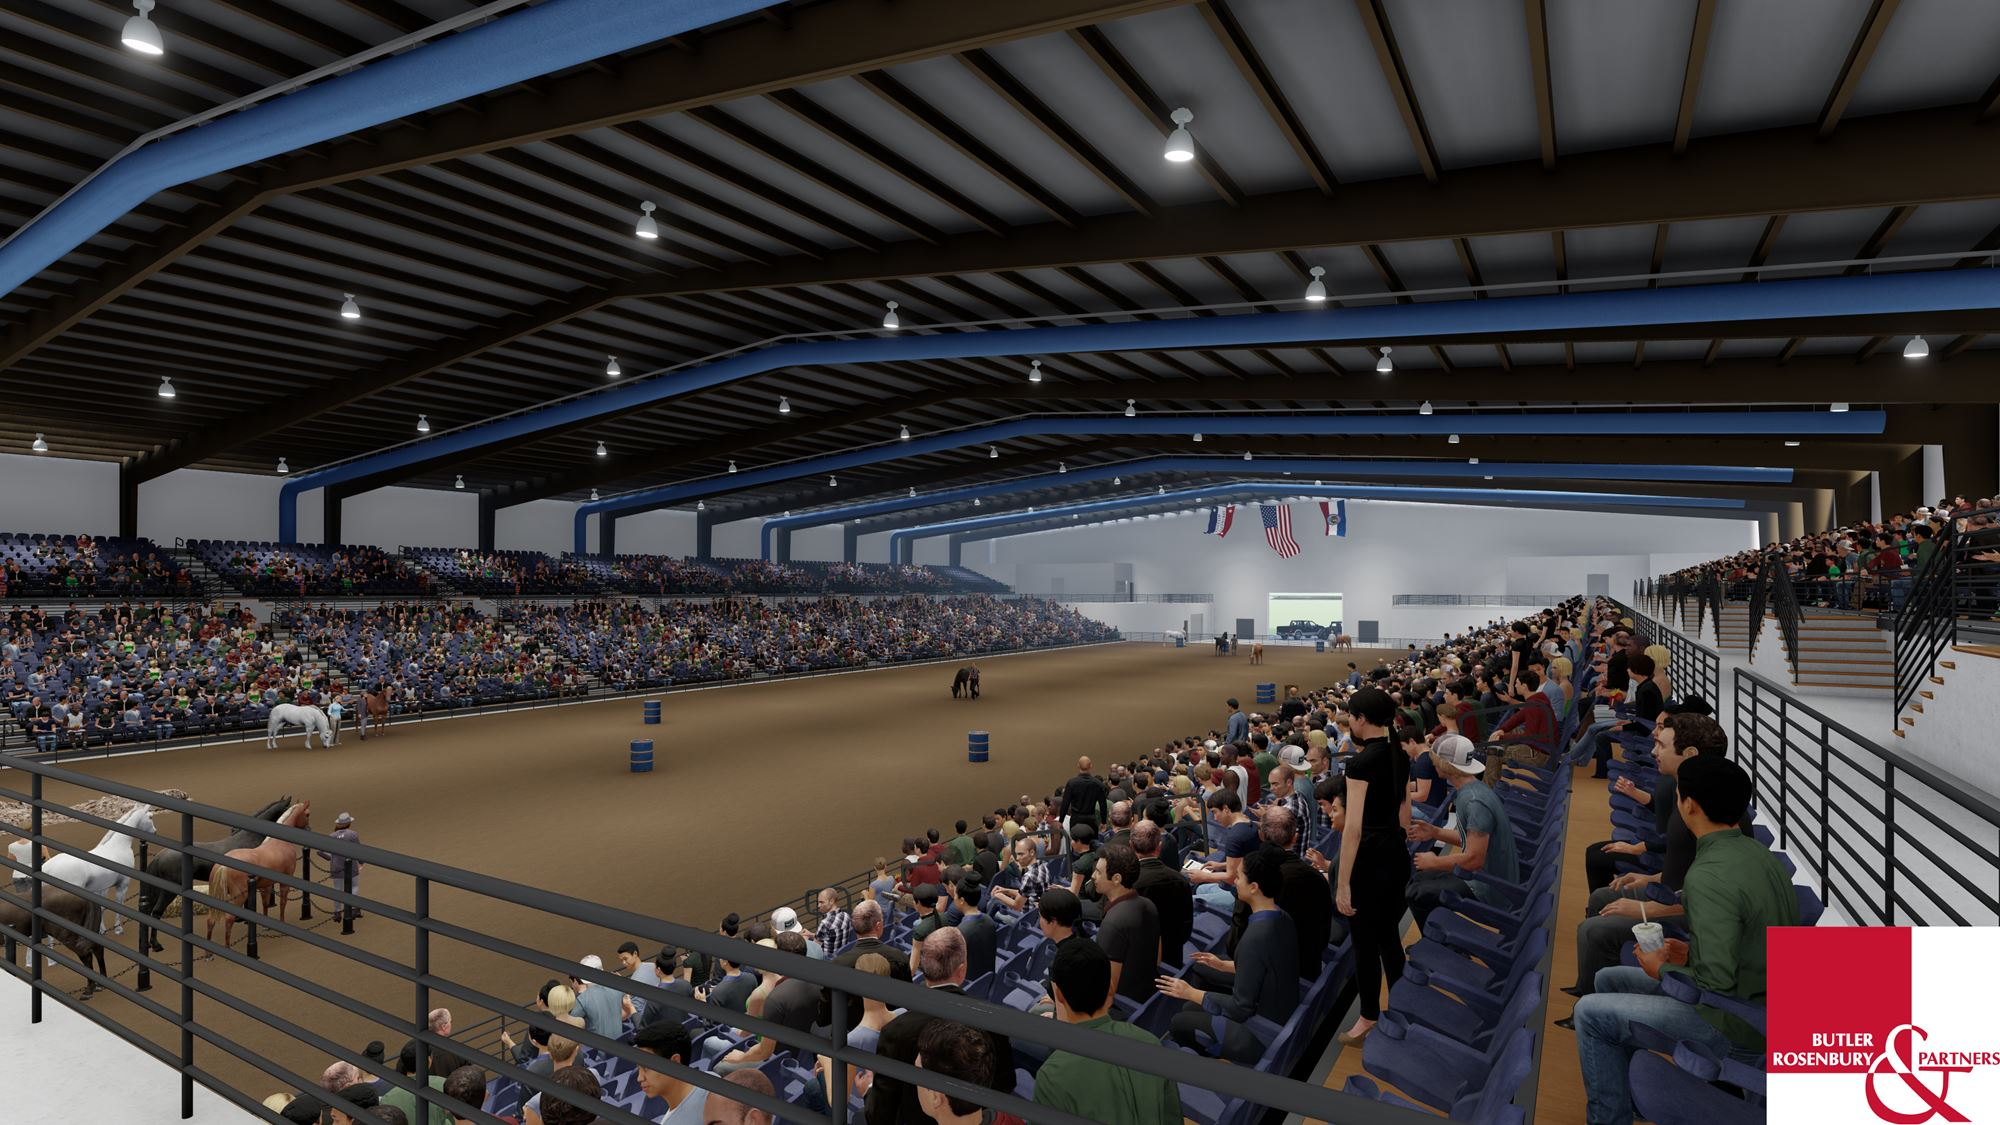 New arena rodeo rendition